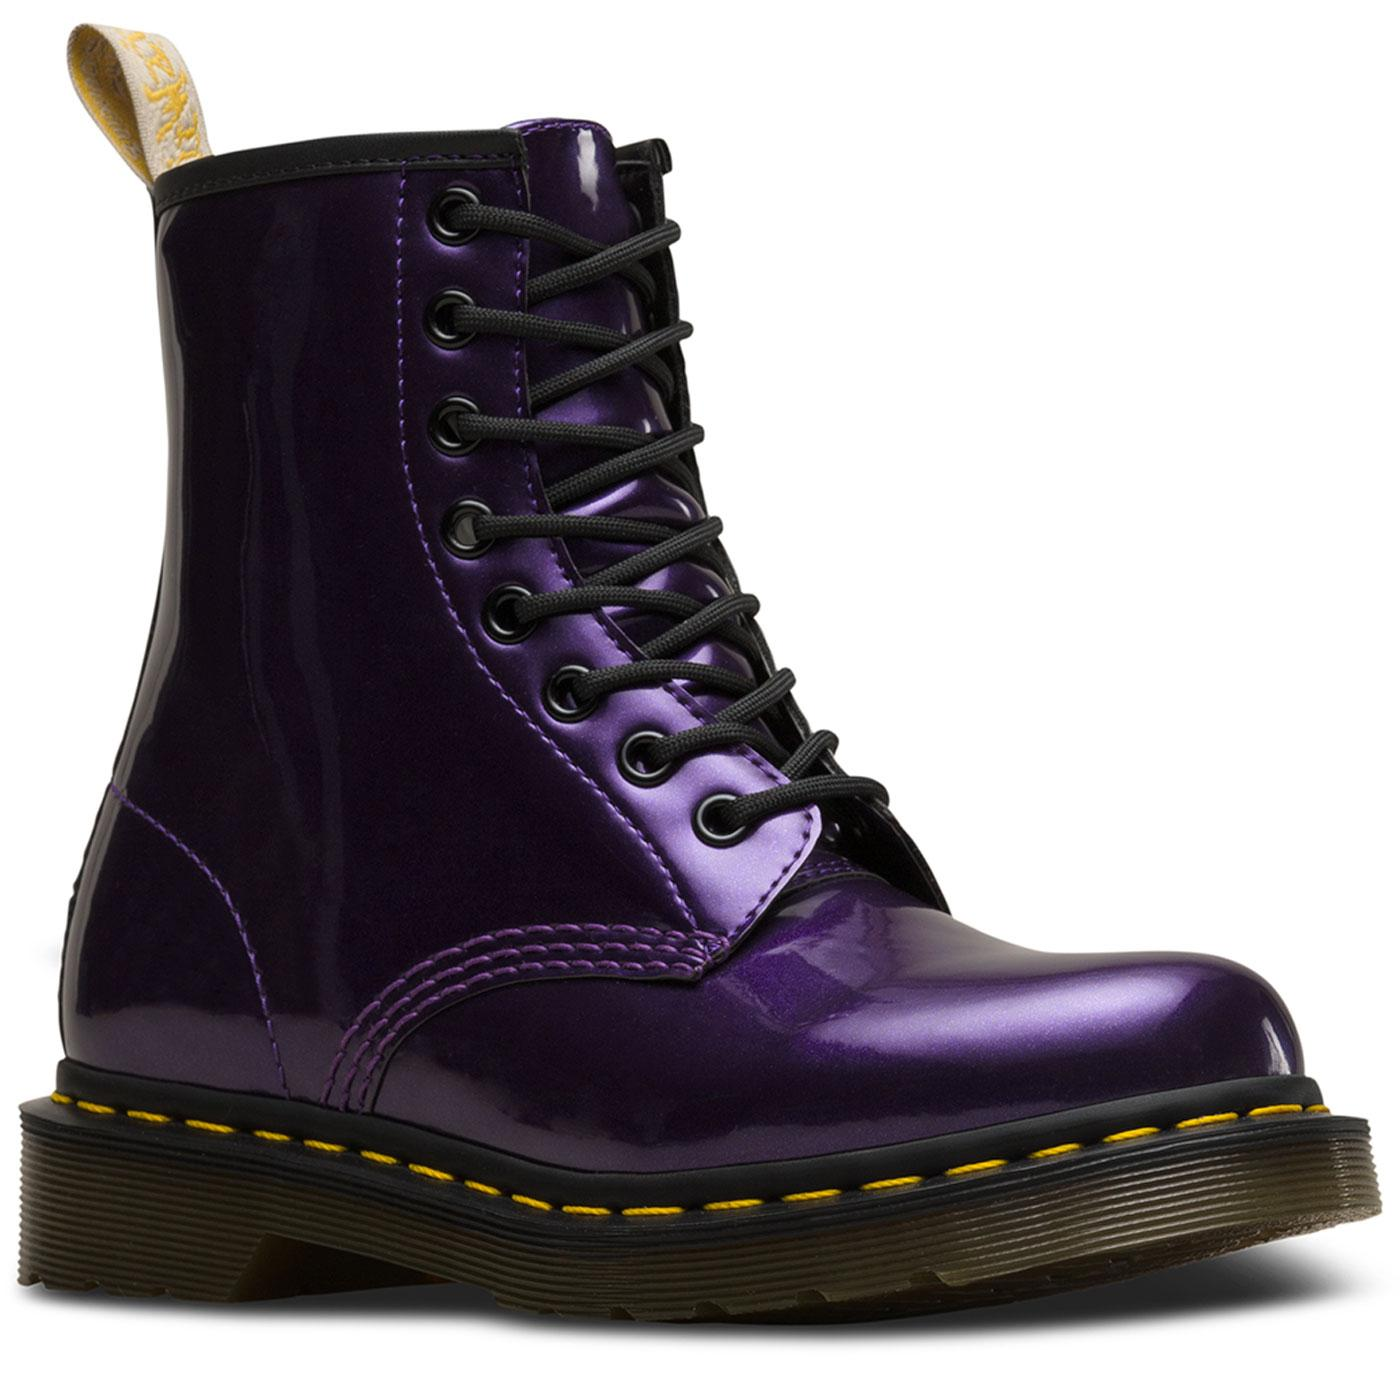 Vegan DR MARTENS 1460 Boots Chrome Metallic Purple